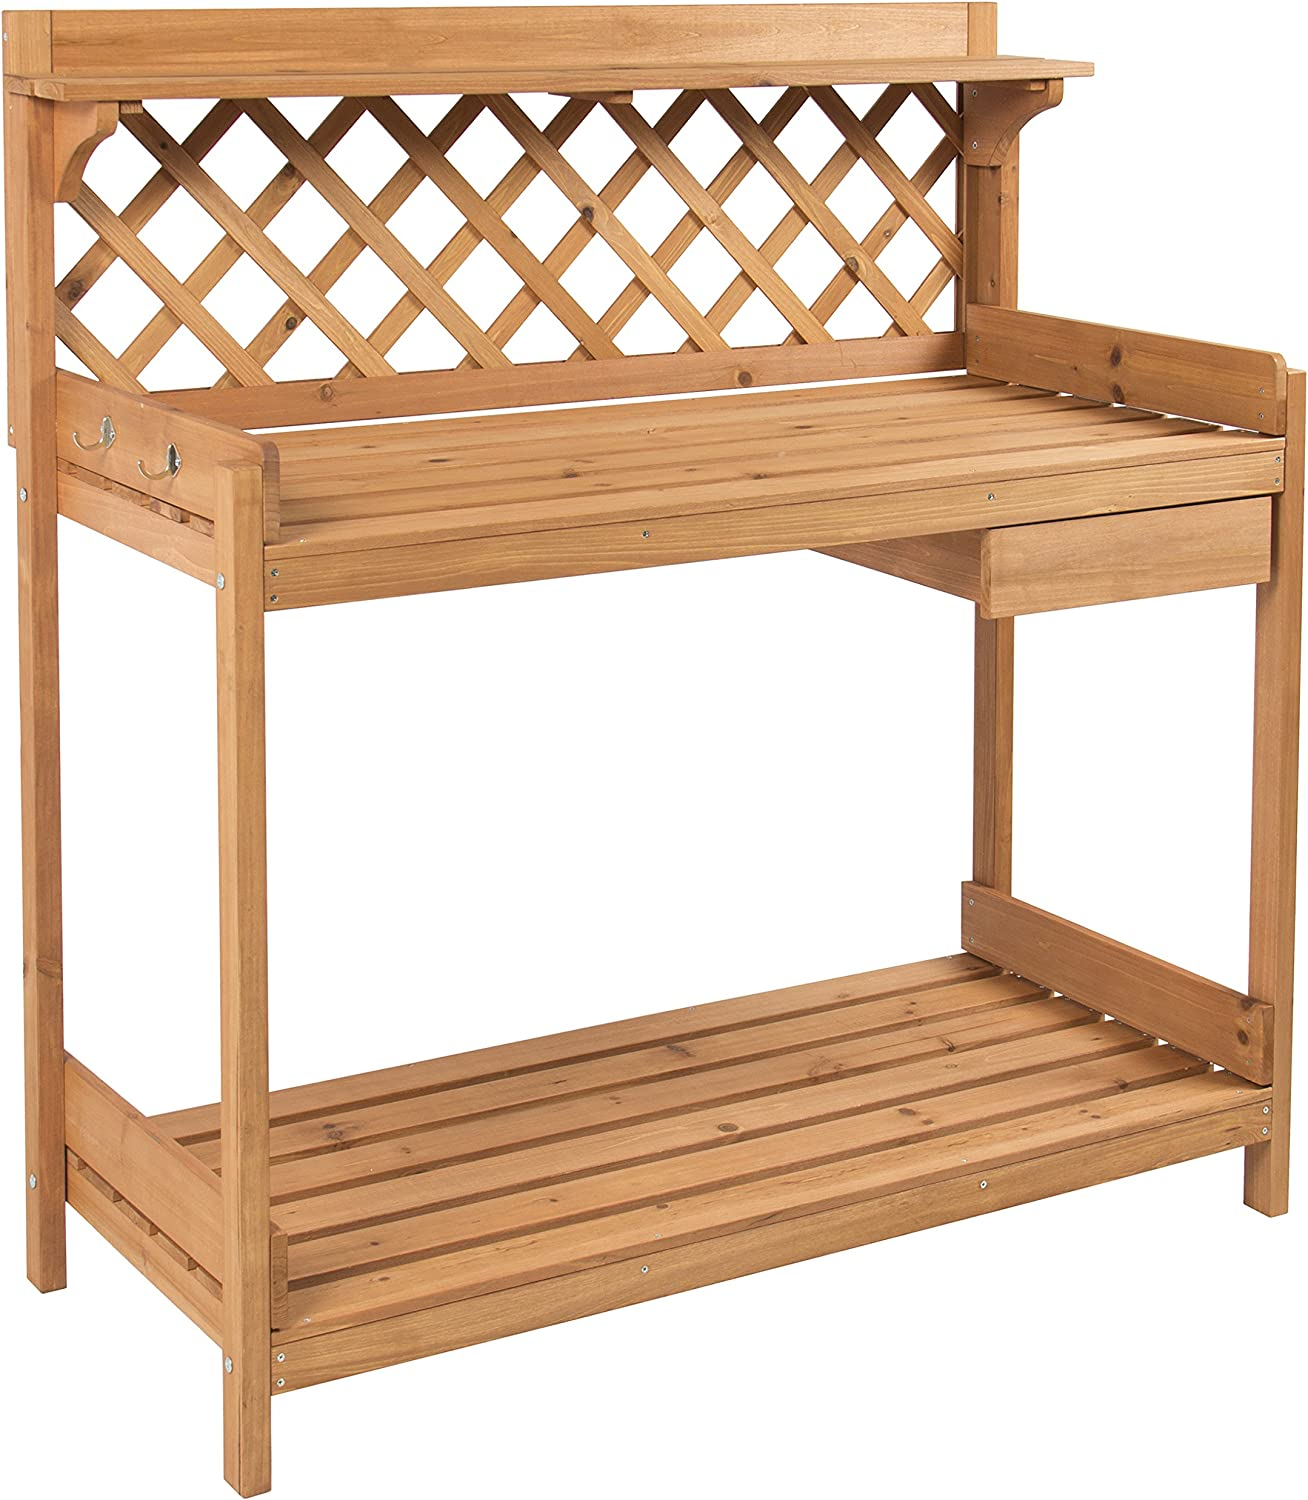 Best Choice Products Outdoor Wooden Garden Potting Bench Work Station Table w Cabinet Drawer, Open Shelf, Natural Wood Finish